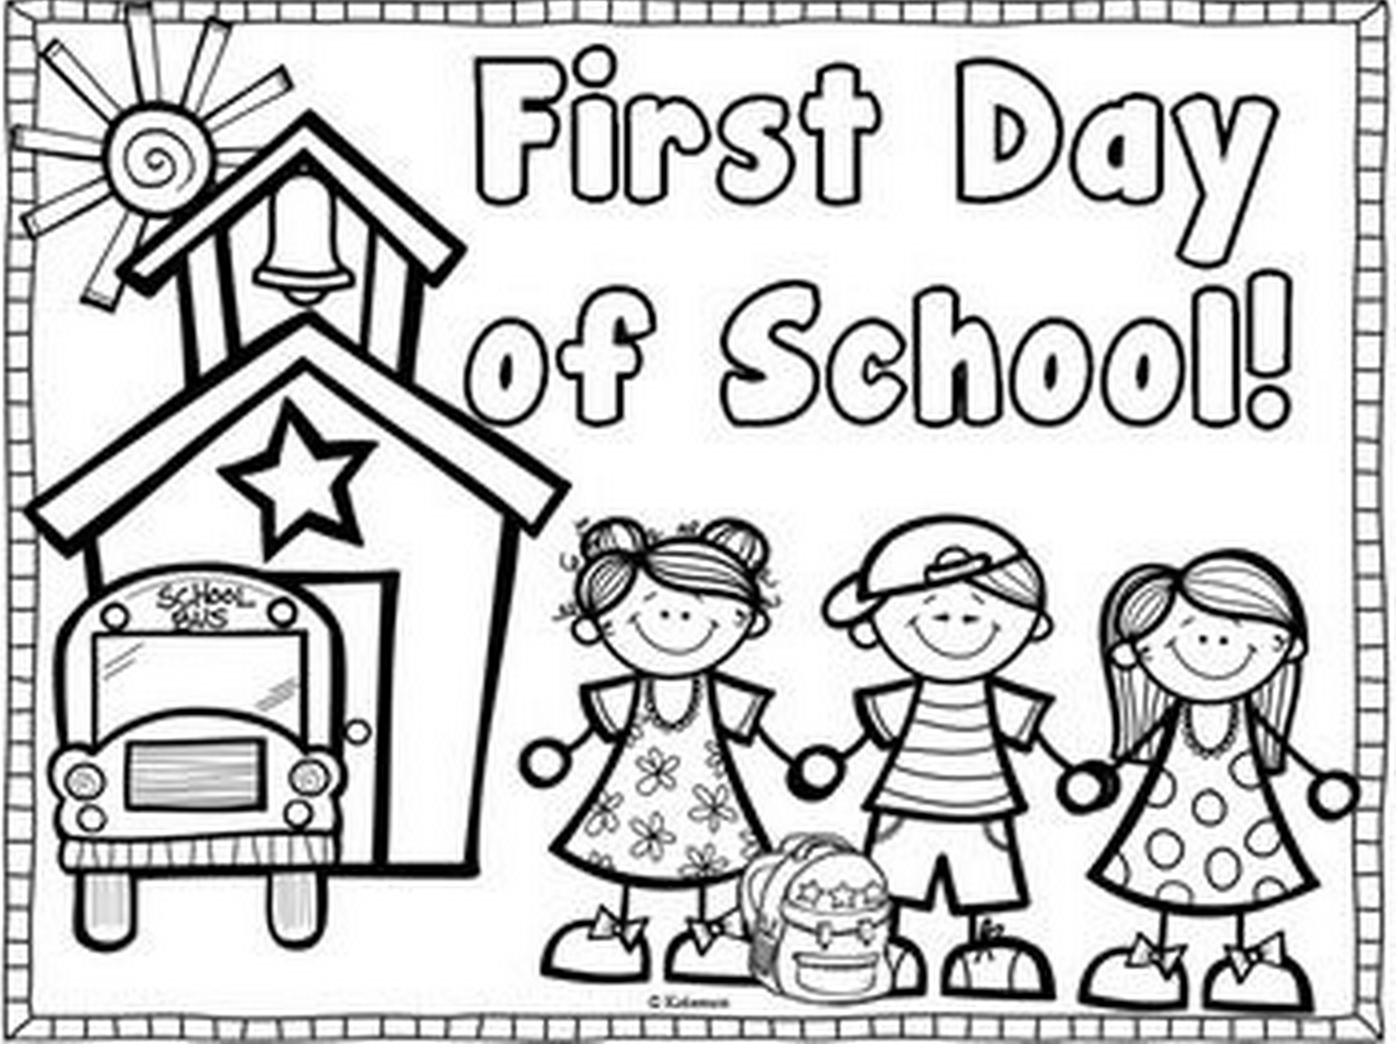 First Day Of School Coloring Page | Coloring Page Book - Free Printable First Day Of School Coloring Pages